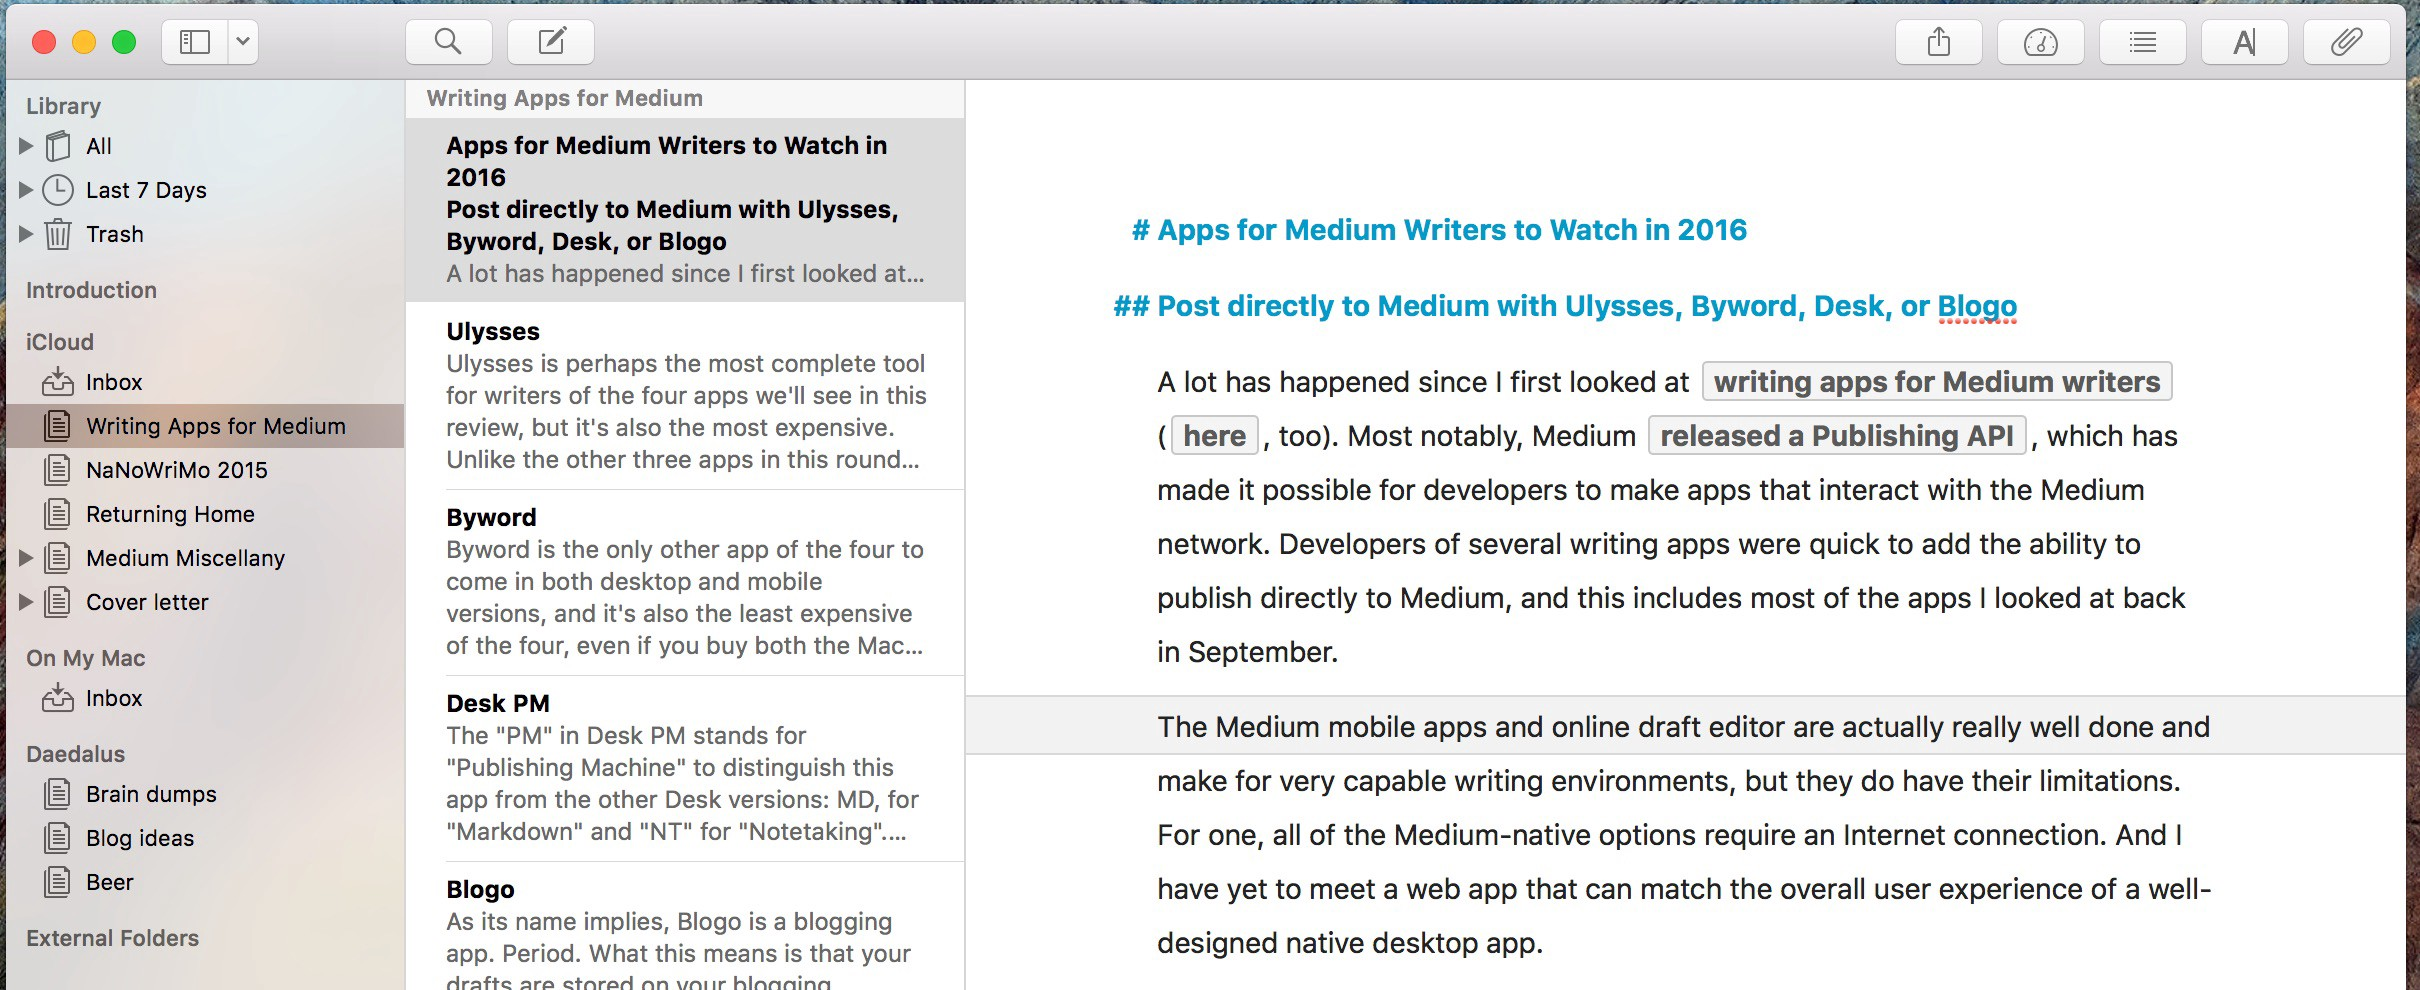 Apps for Medium Writers to Watch in 2016 - The Writing